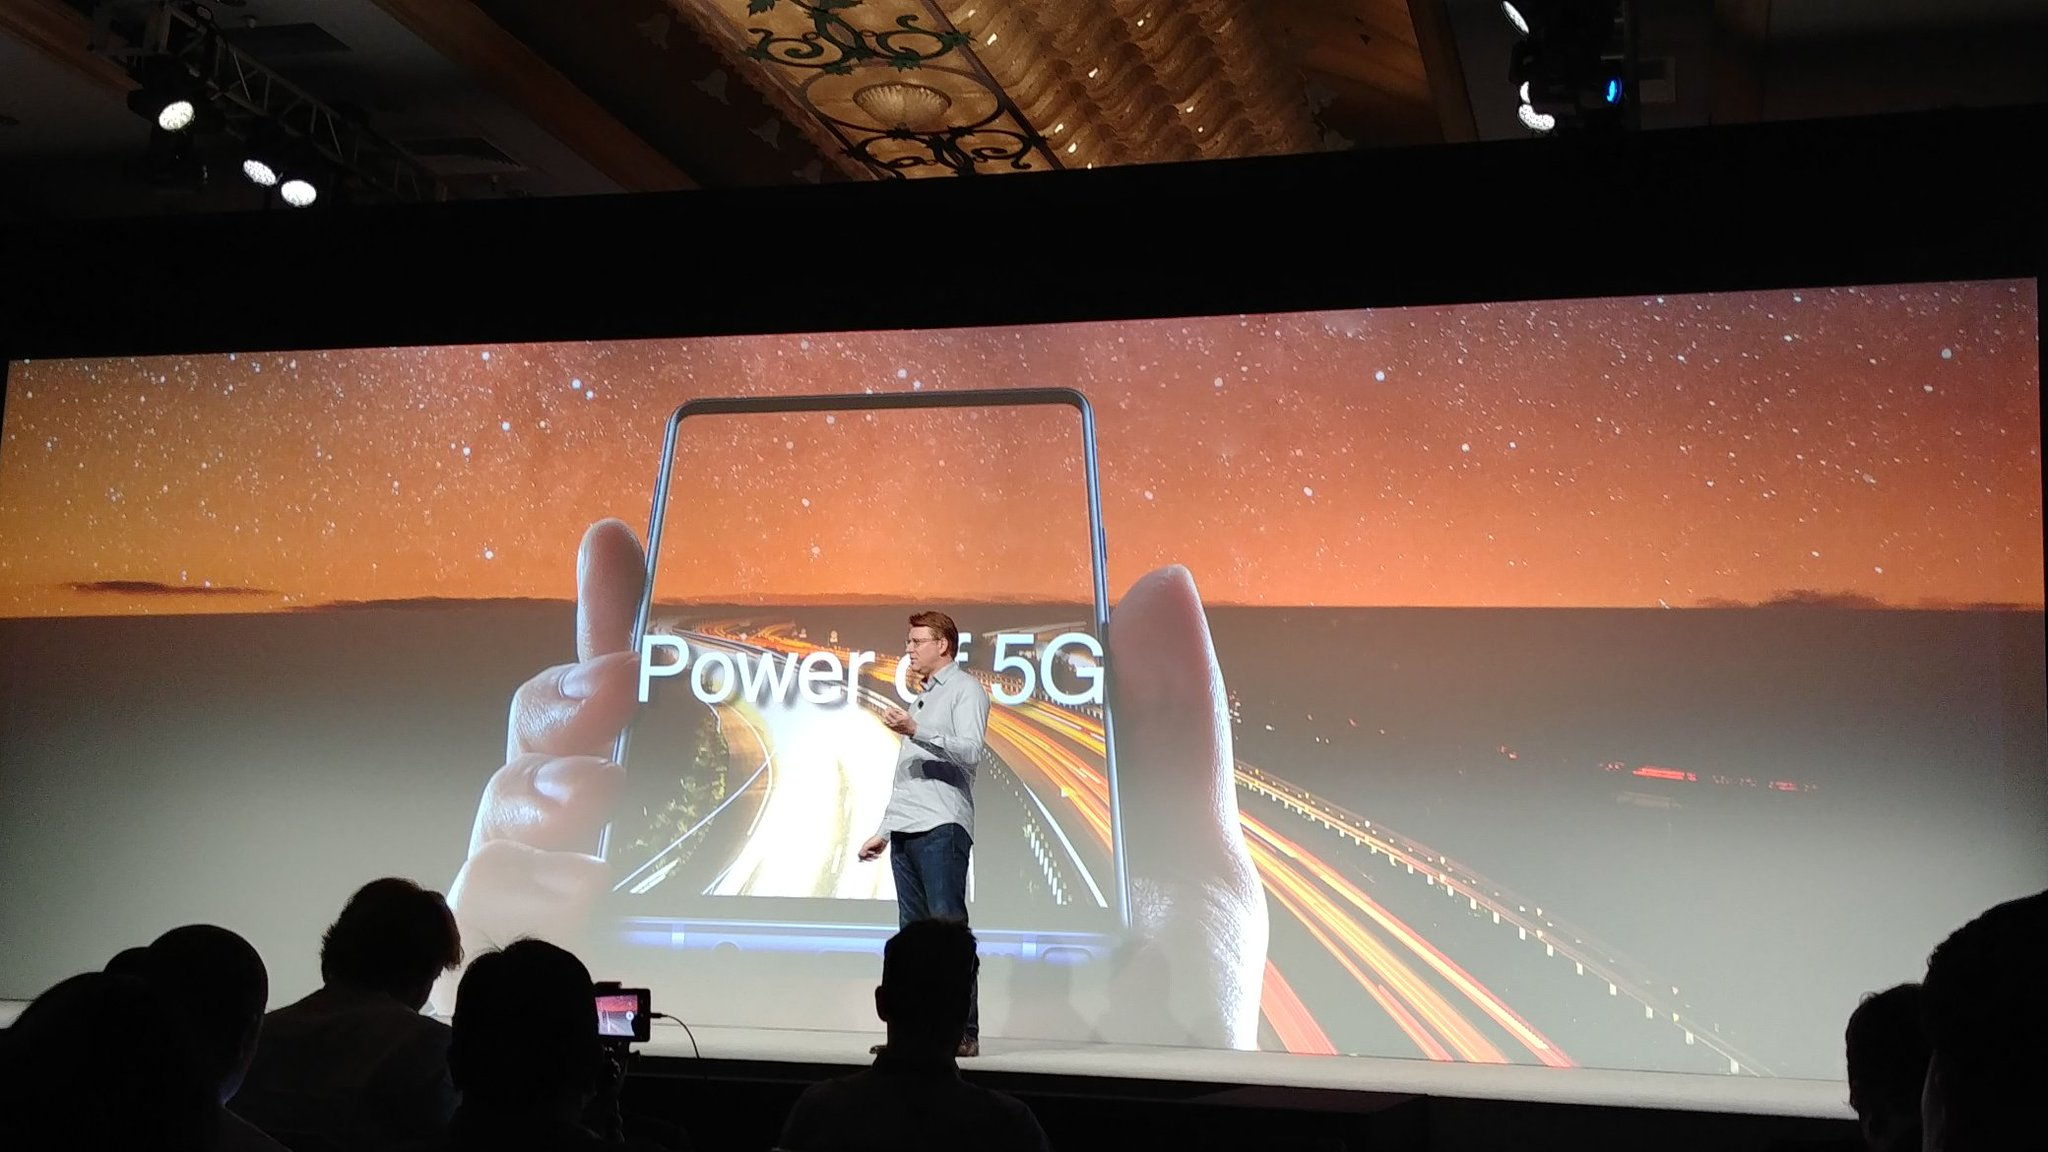 Samsung's SVP of Mobile Product Strategy and Marketing, Justin Denison, was on stage to also share Qualcomm's vision of 5G and they will be working together to bring about the first 5G smartphone in early 2019.